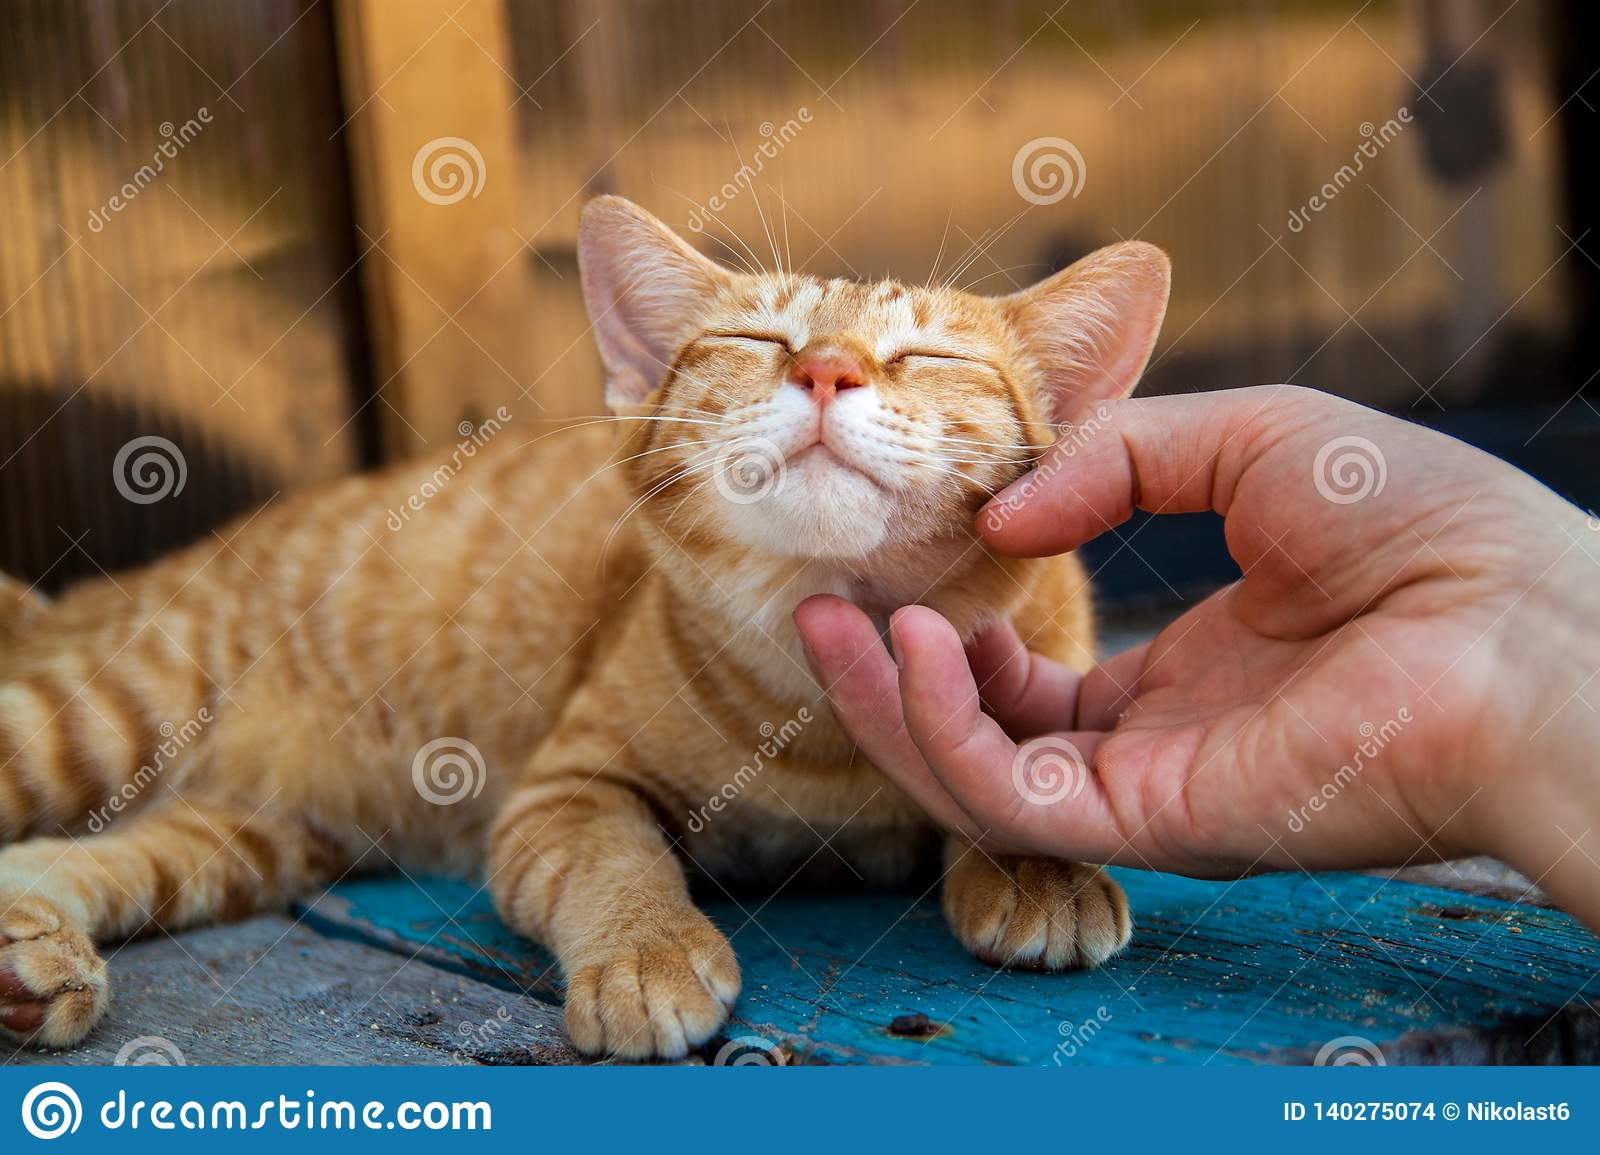 Happy little red cat is pleased with hand stroking.